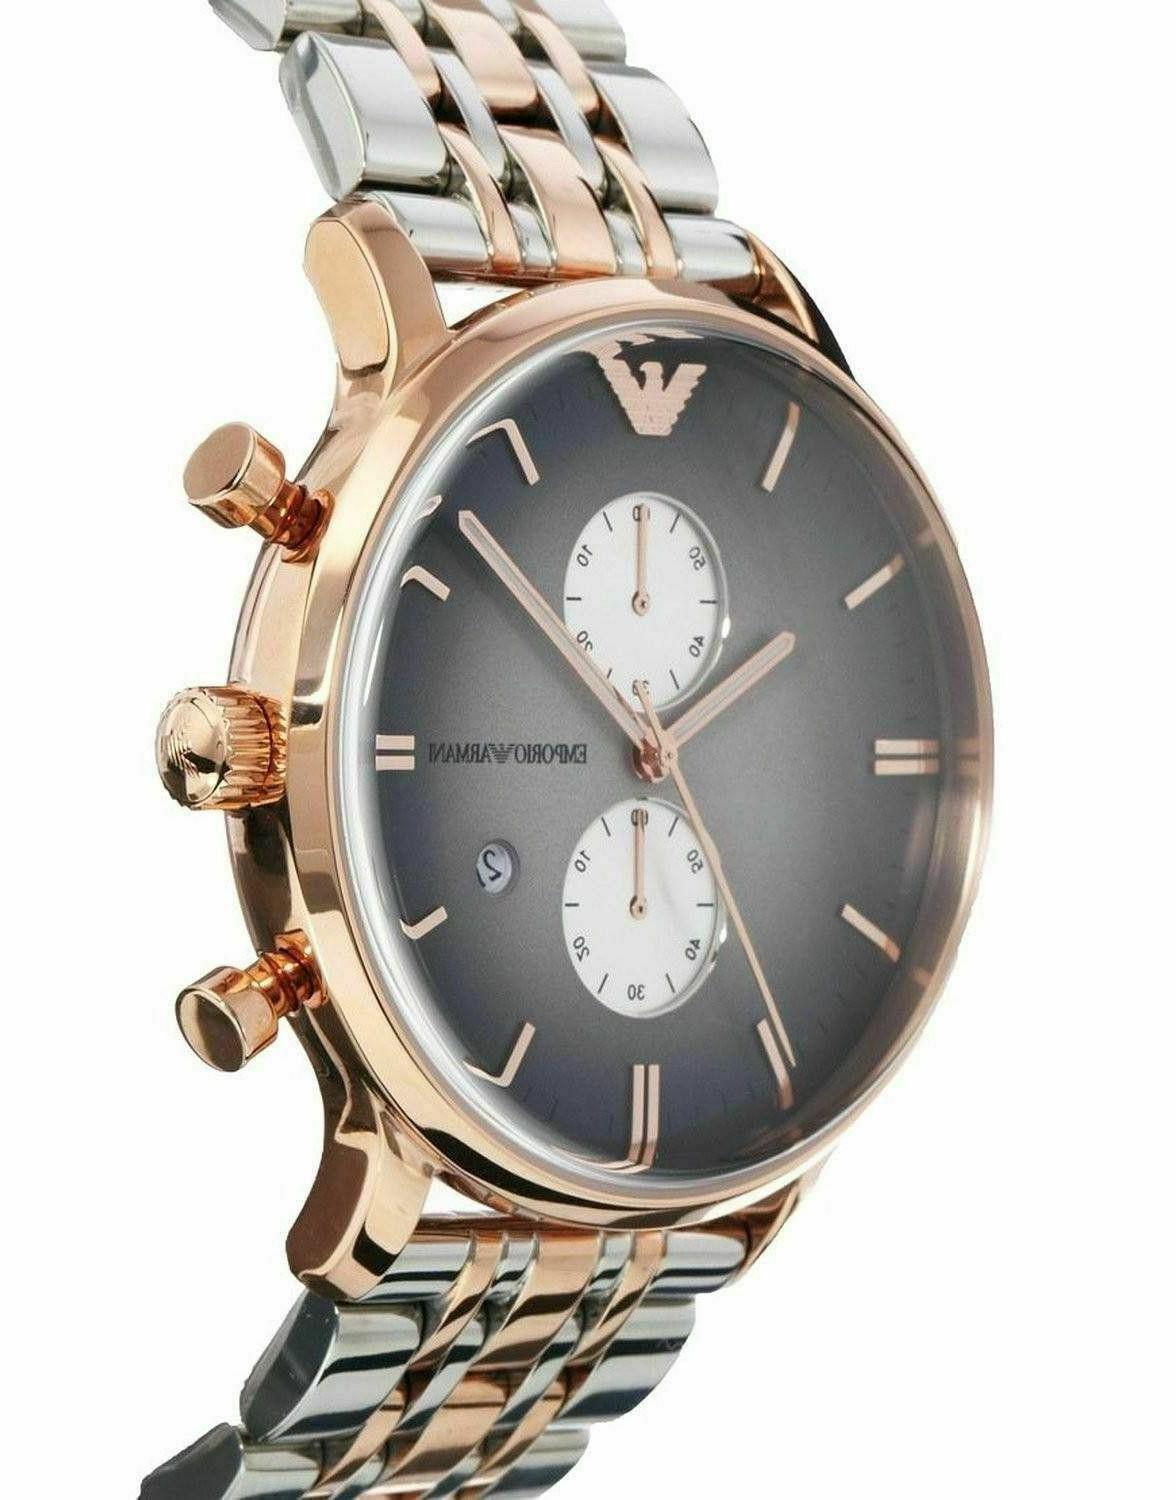 ⌚New Emporio AR1721 Stainless Men's